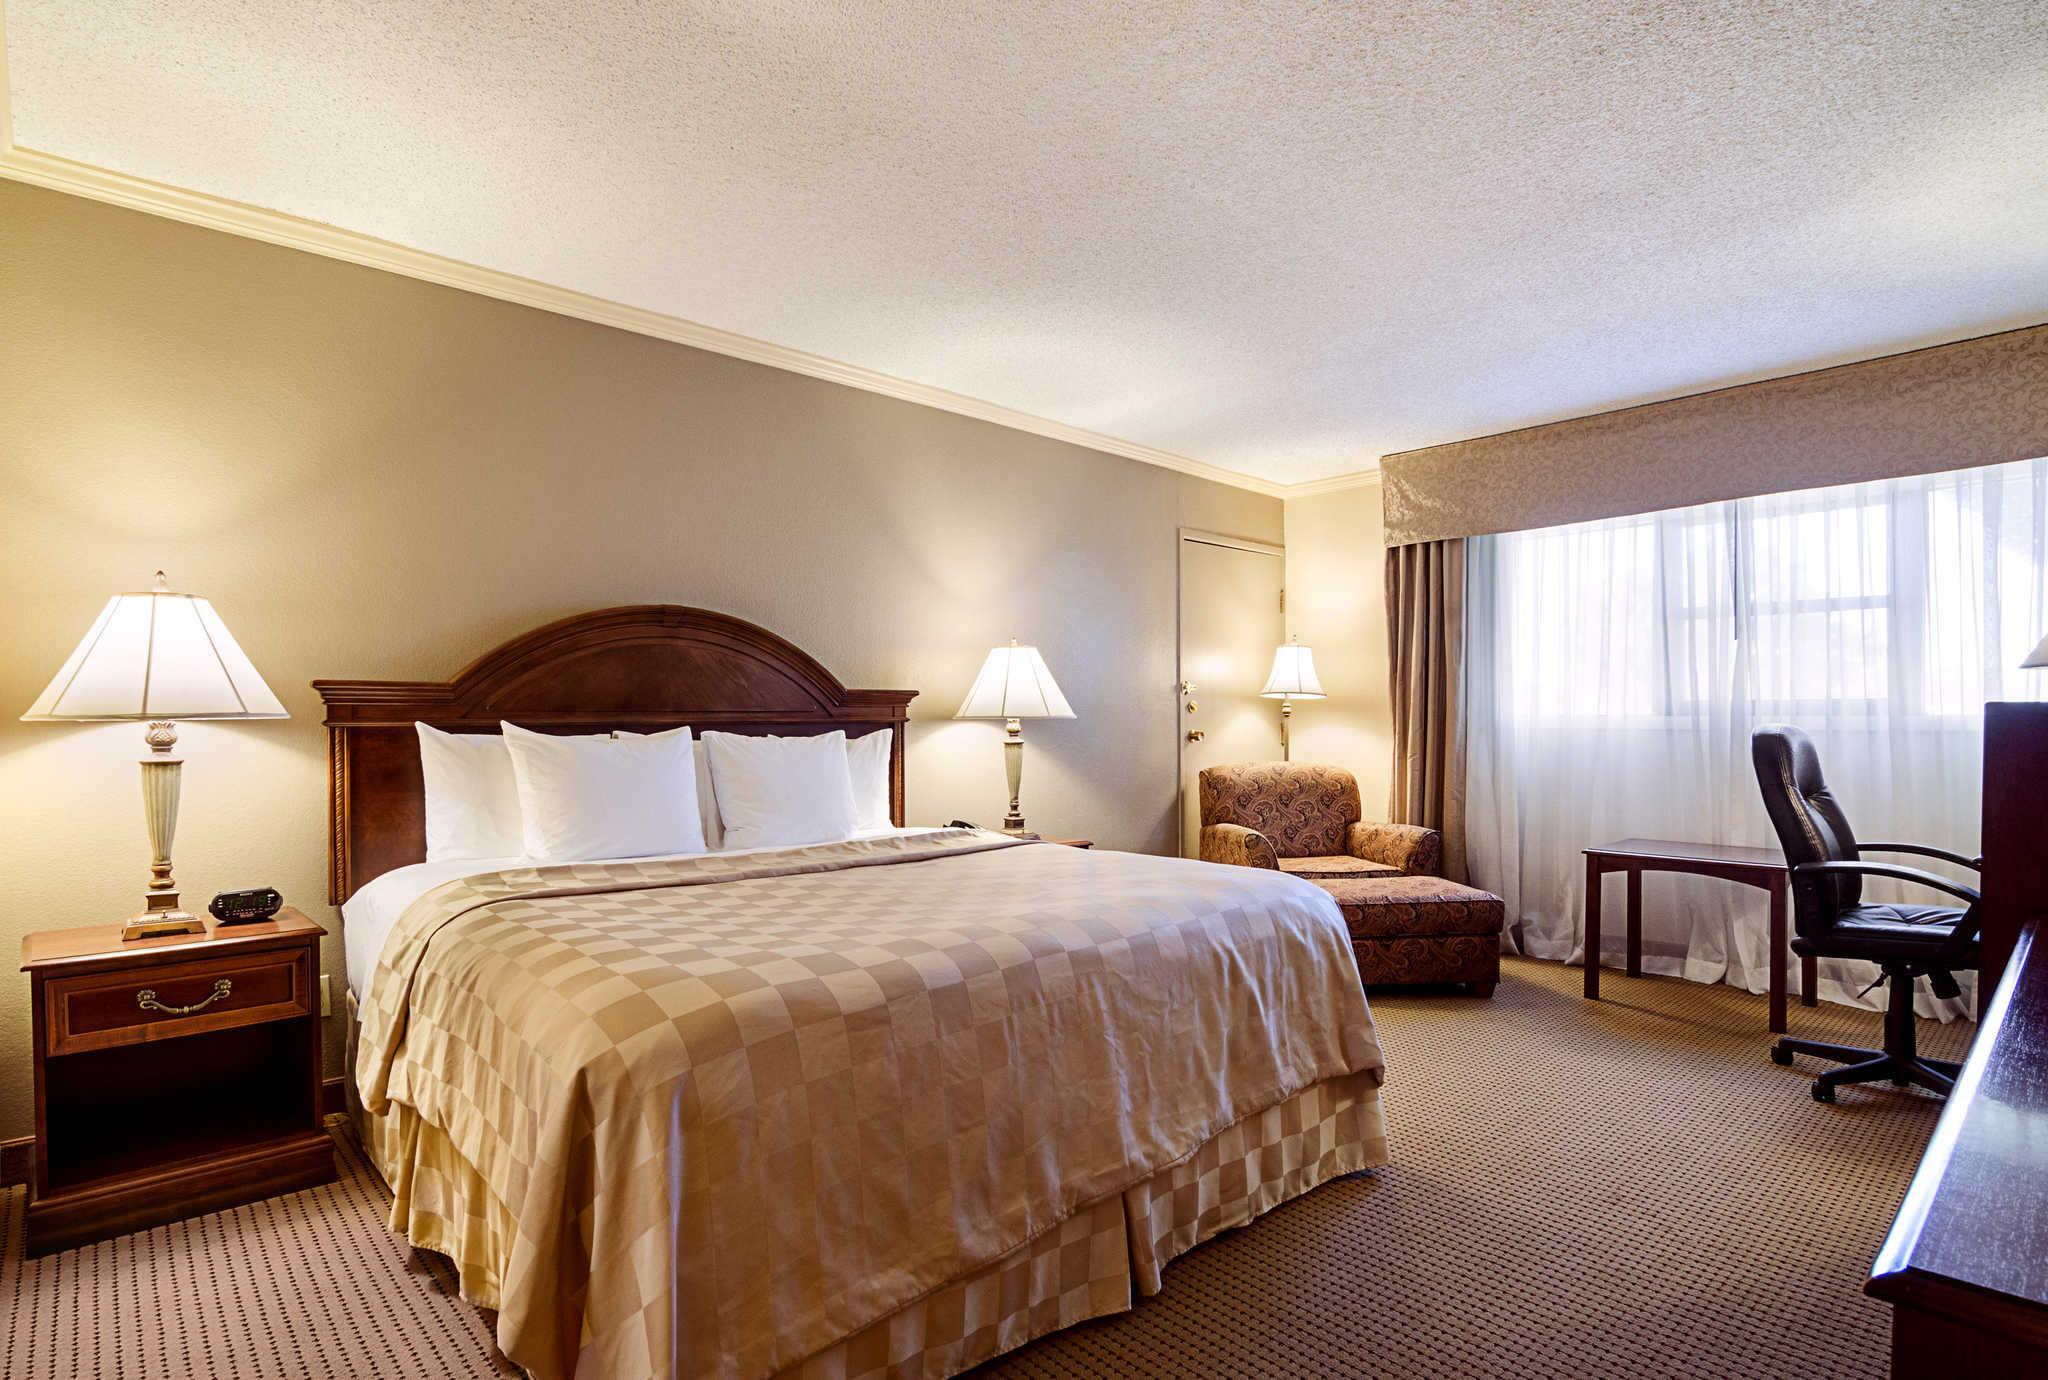 Standard With 1 King Bed   Guestroom Clarion Inn Garden City Ideas